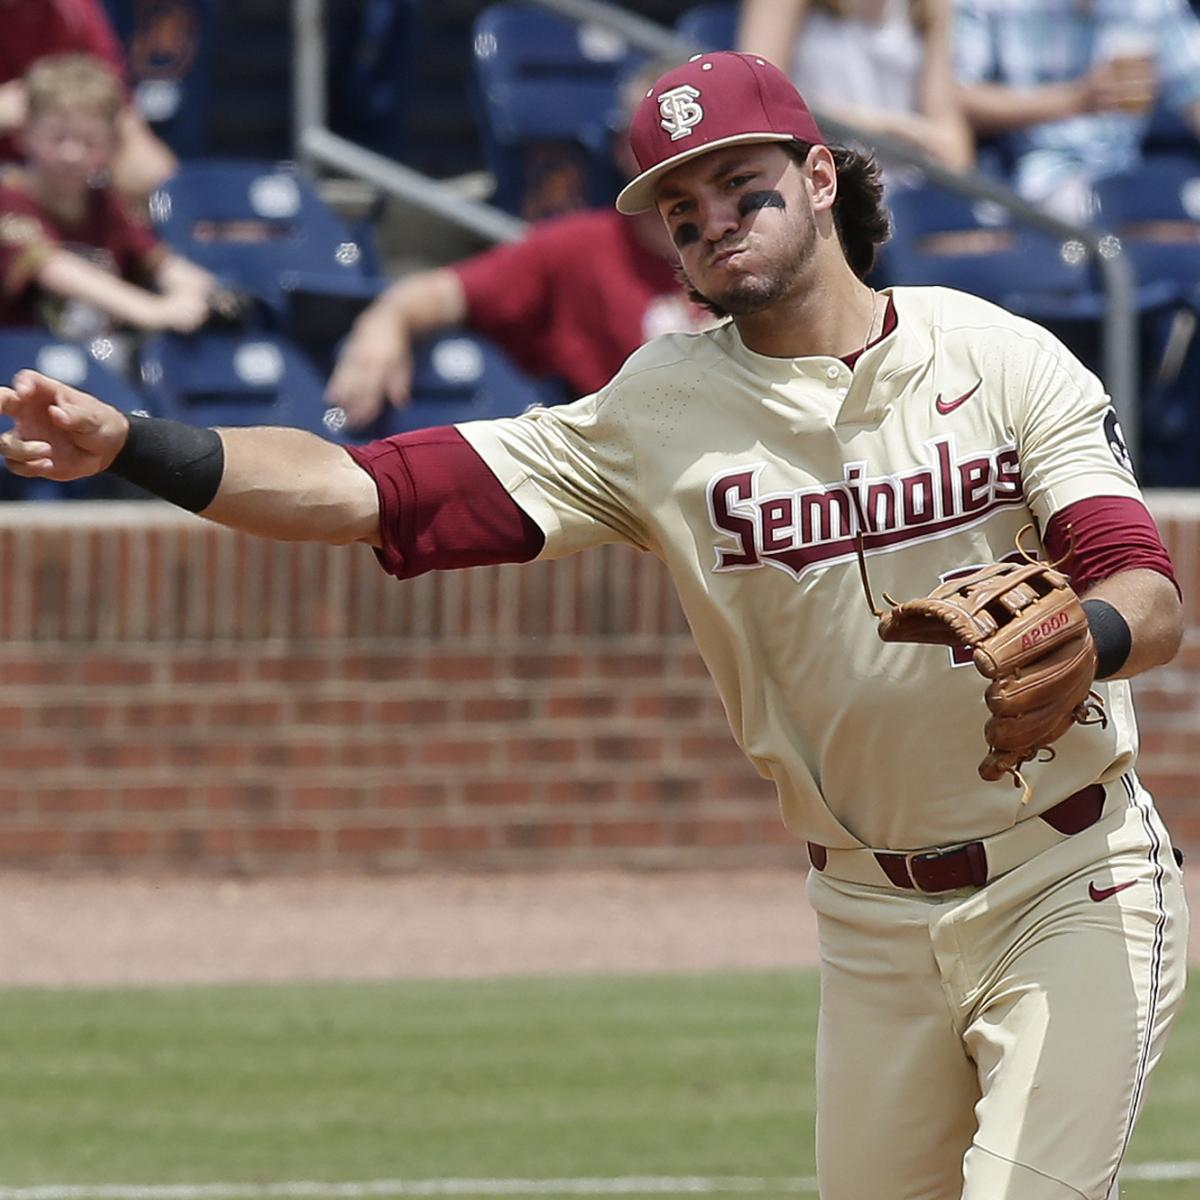 best prospects in baseball 2019 2019 MLB Mock Draft: Early Predictions for Top 1st Round Baseball